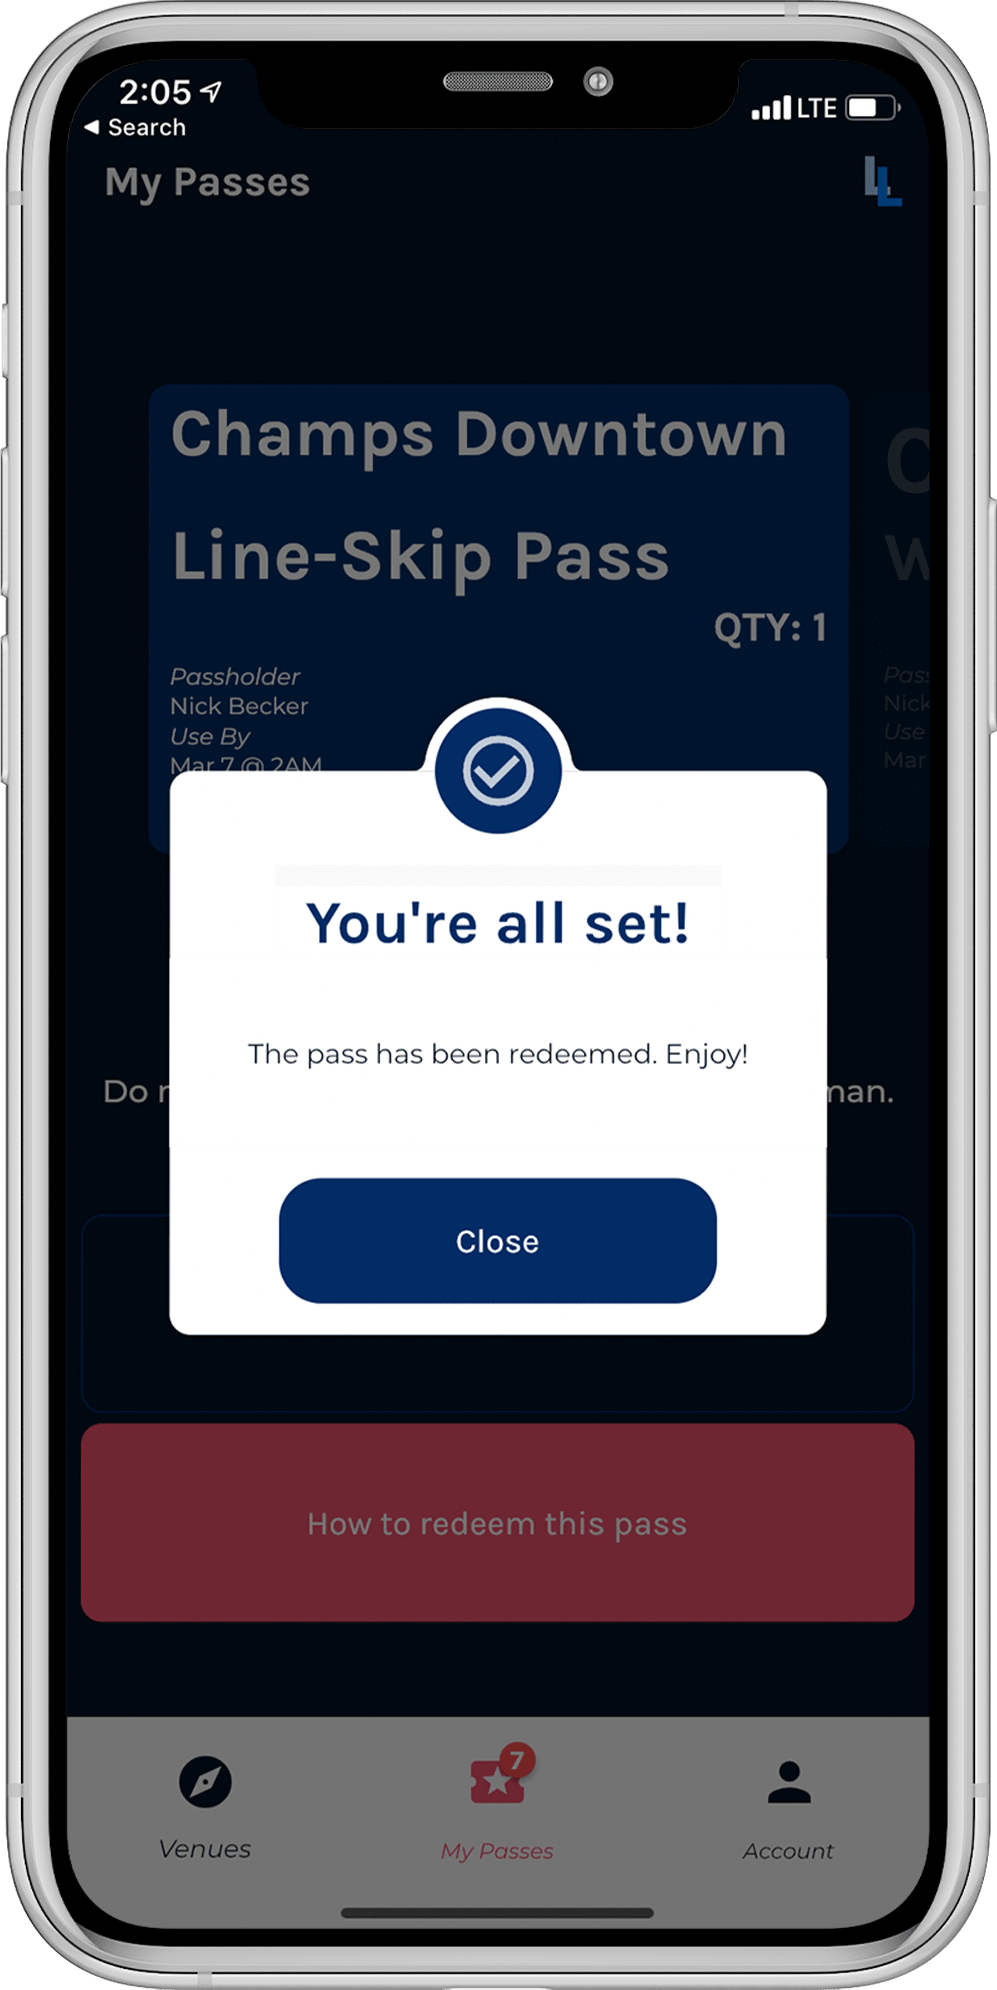 Mobile App Redeeming A Pass